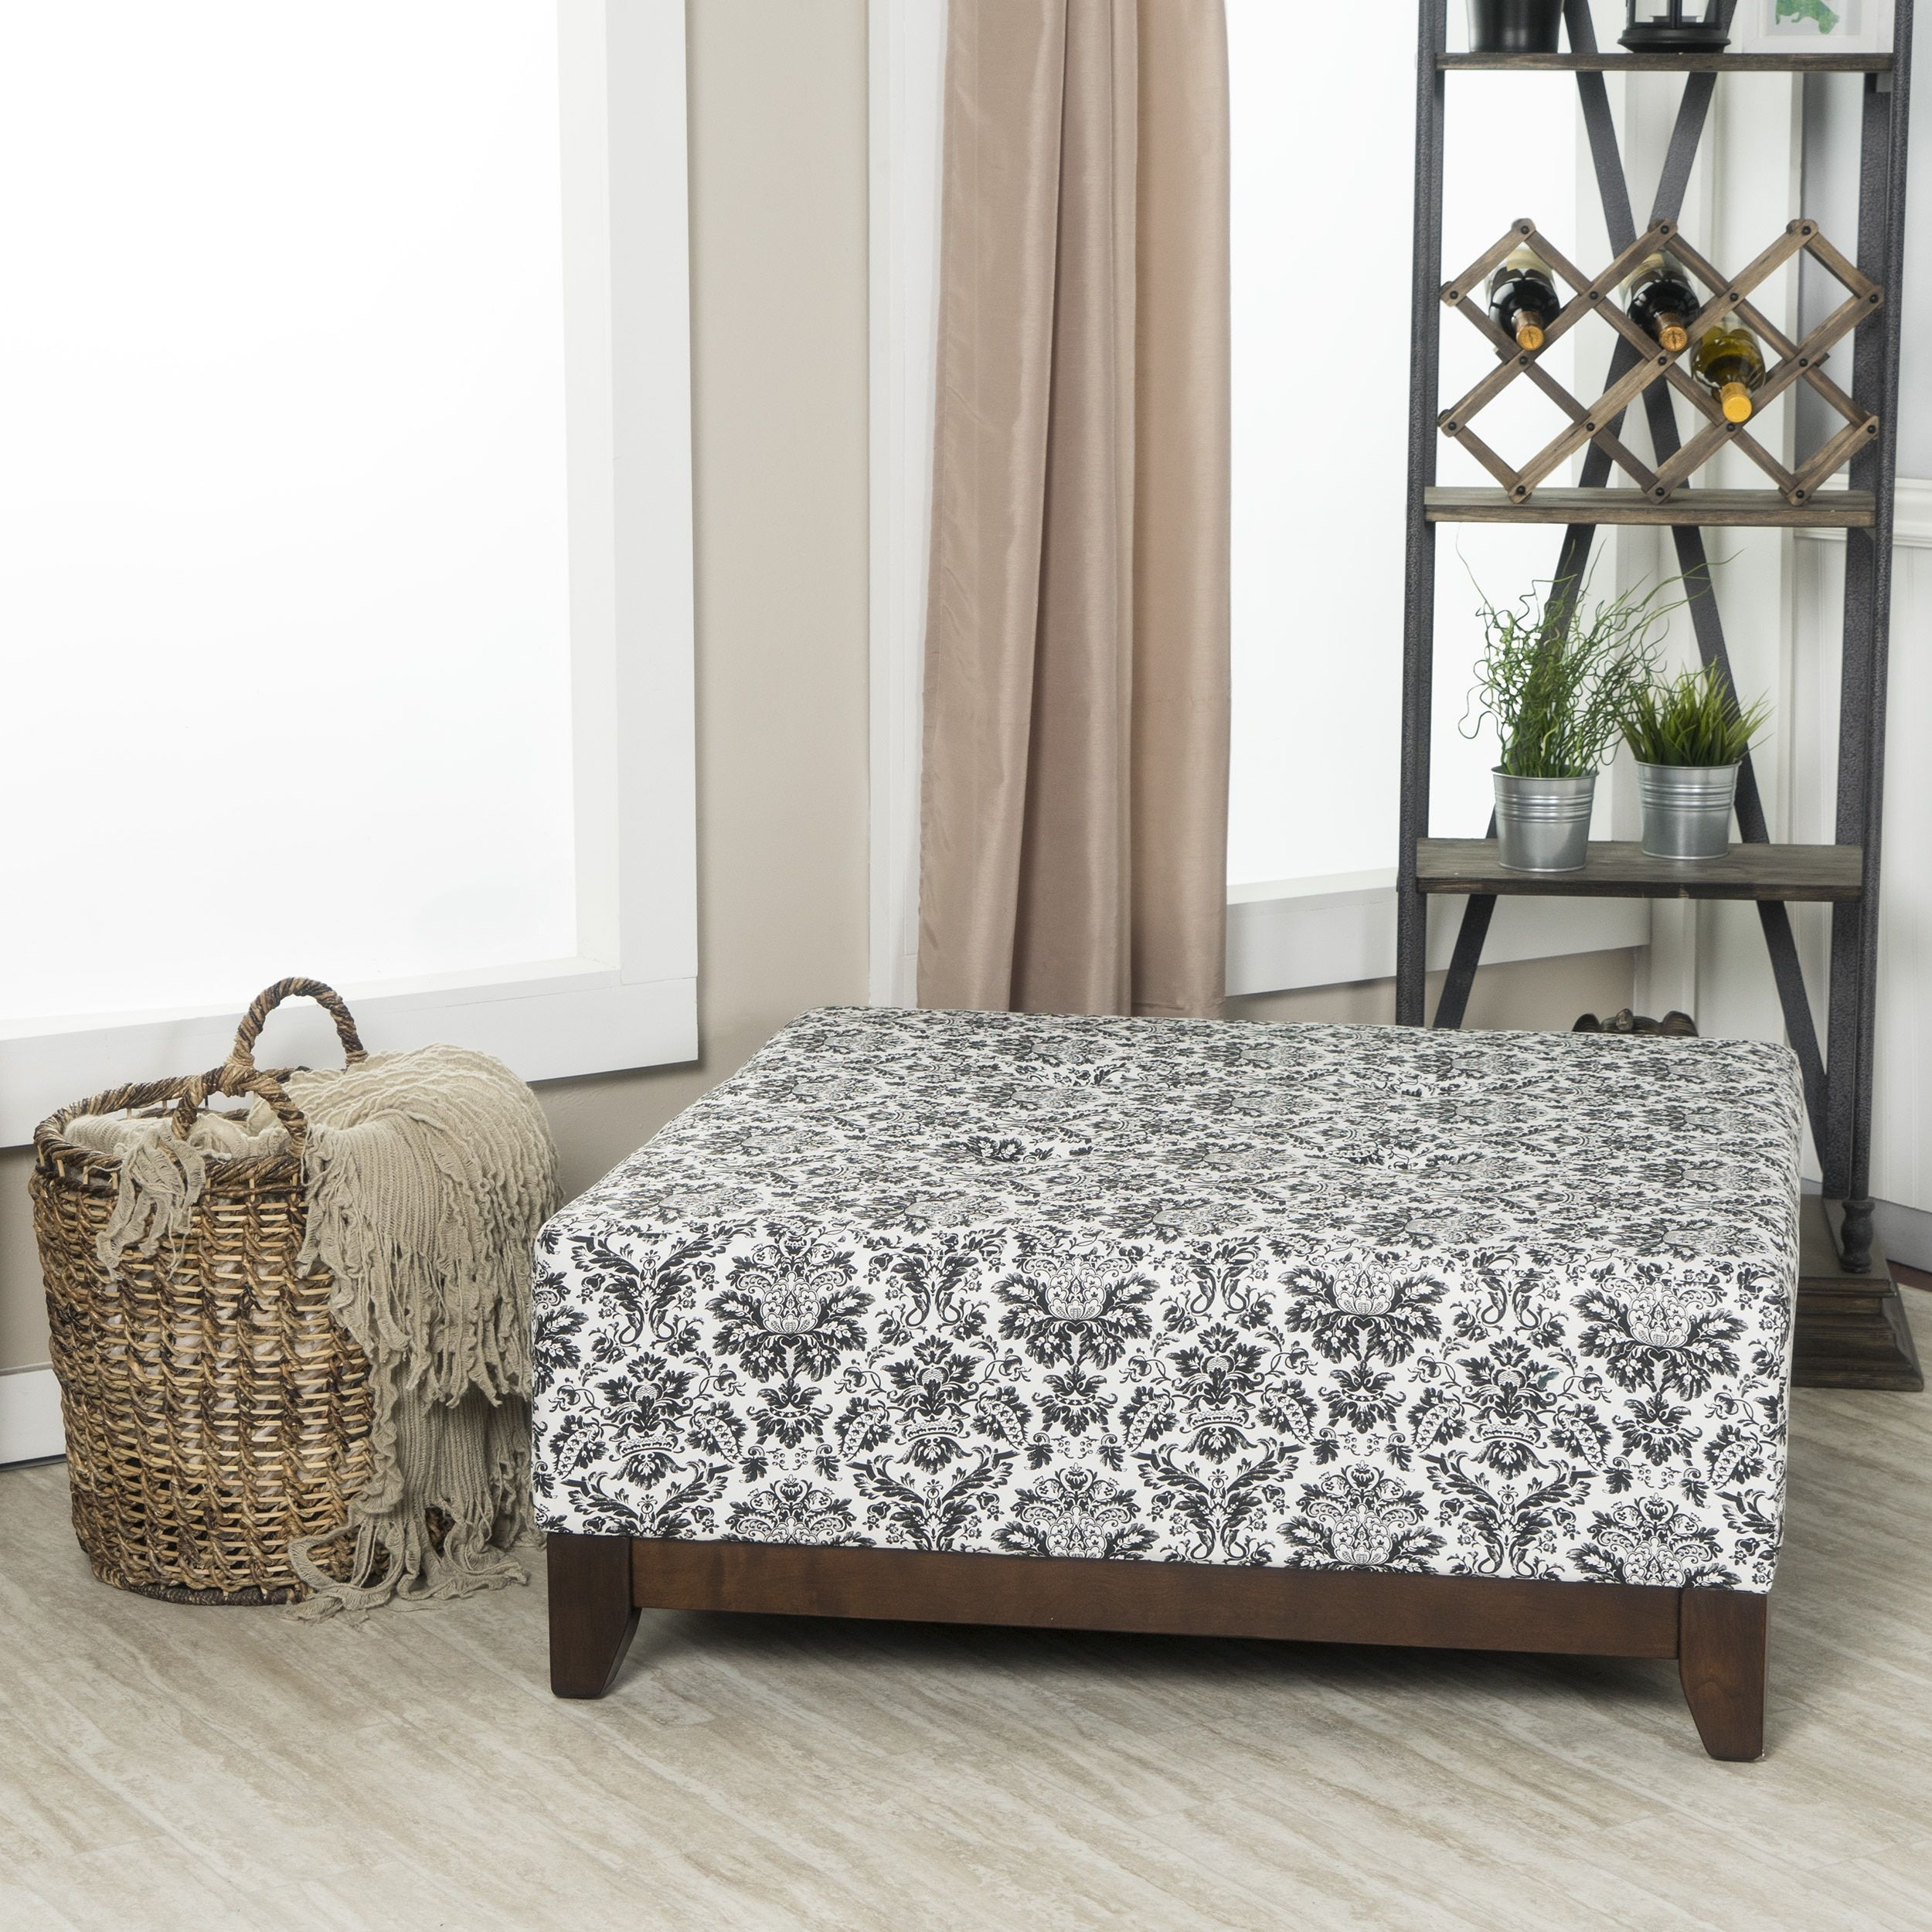 Fine Crawfird And Burke Fielding And White Damask Square Ottoman Cjindustries Chair Design For Home Cjindustriesco